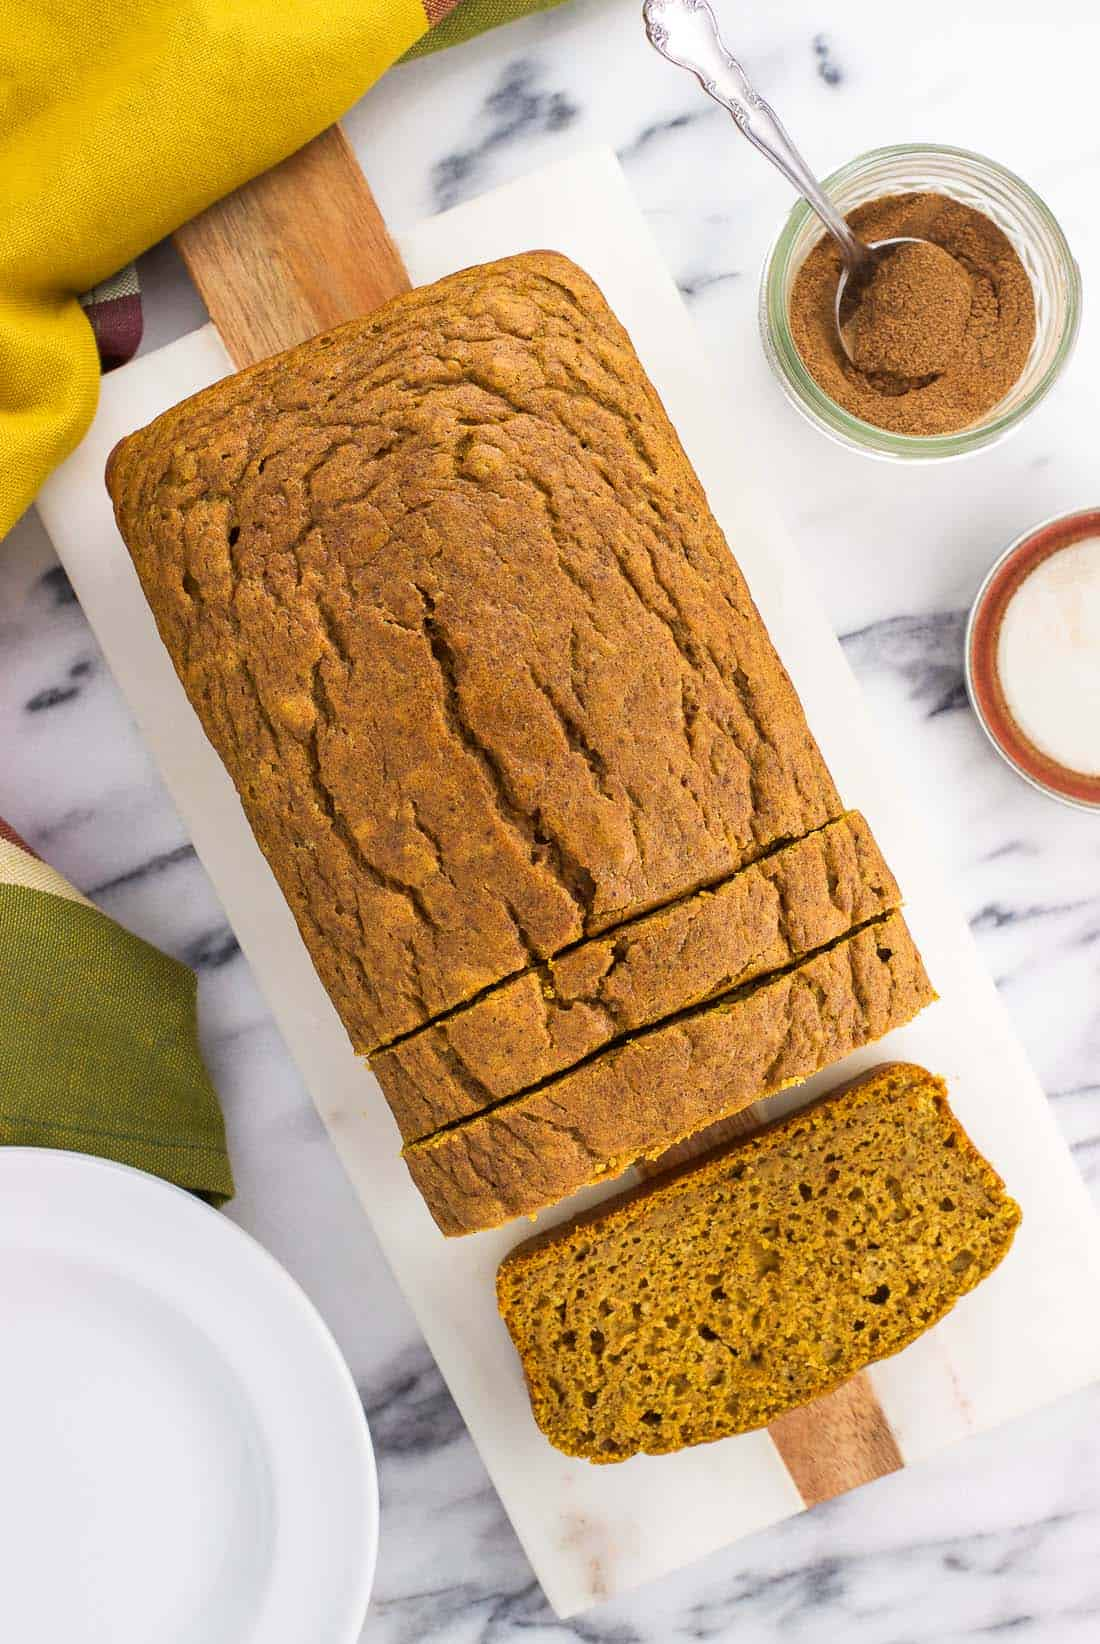 Naturally sweetened pumpkin bread is made with maple syrup for a wonderfully flavored and not-too-sweet quick bread recipe. This moist pumpkin bread is easy to make, flavored with a warm blend of spices, and made without refined sugars.